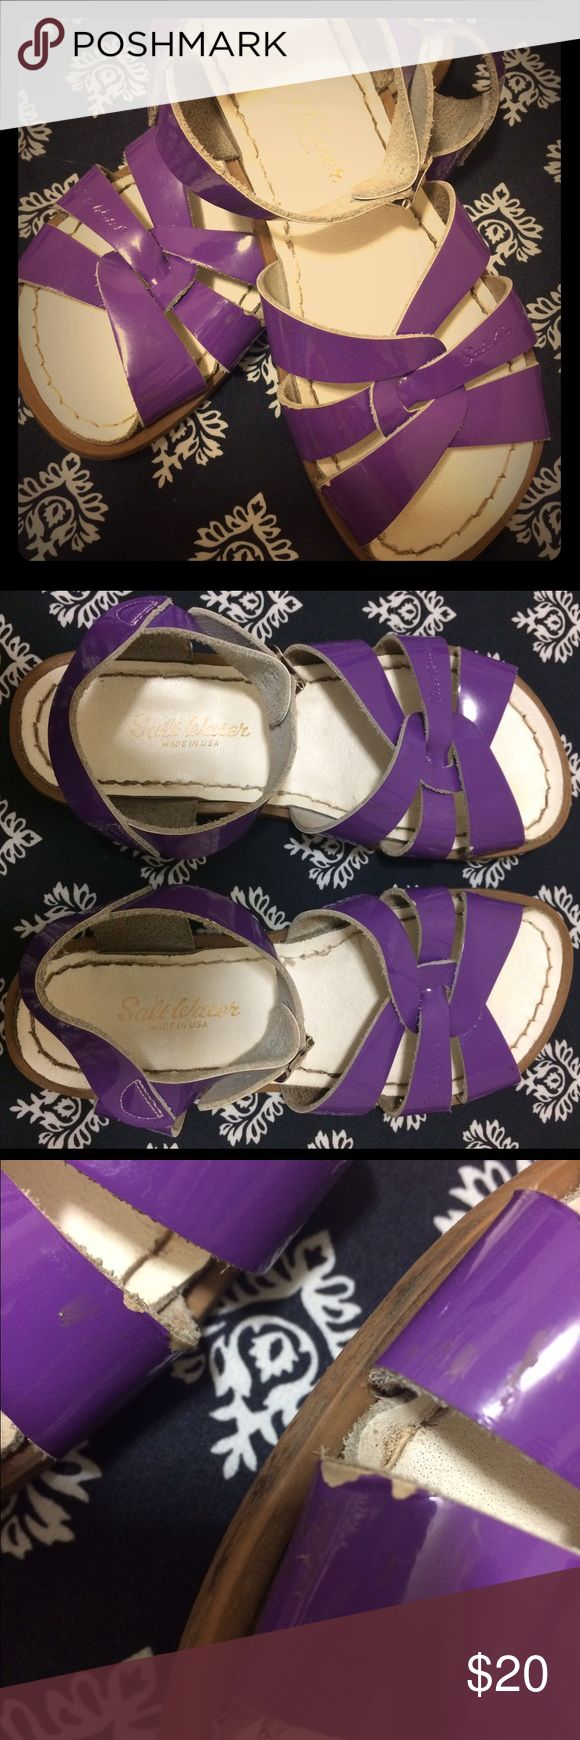 Saltwater Sandals Purple patent leather girls size 2 Authentic Saltwater sandals. Salt Water Sandals by Hoy Shoes Sandals & Flip Flops